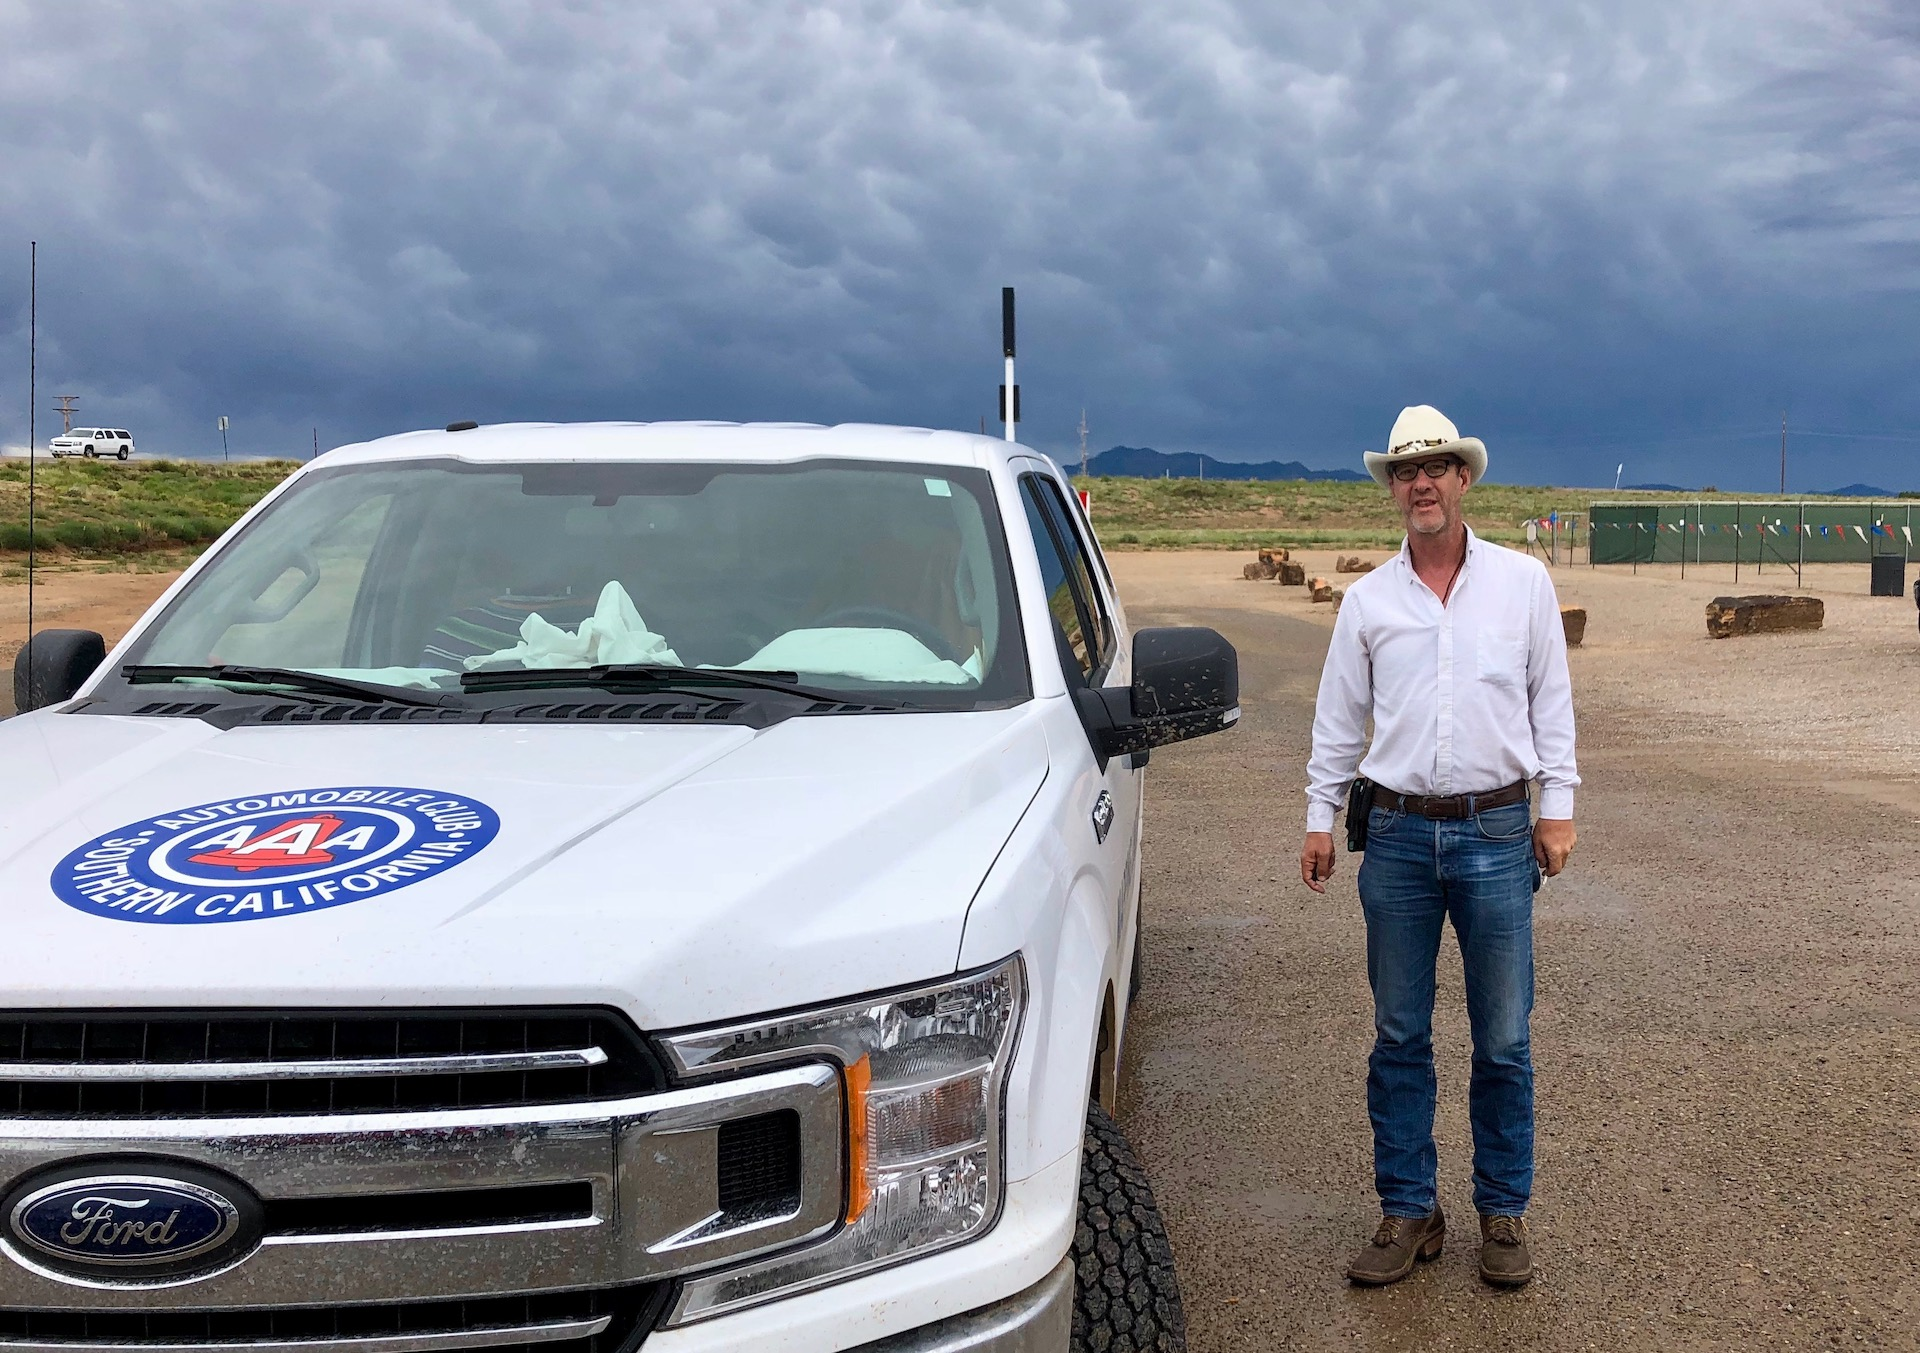 AAA field cartographer Shane Henry in New Mexico. (Photo: Jim Benning)